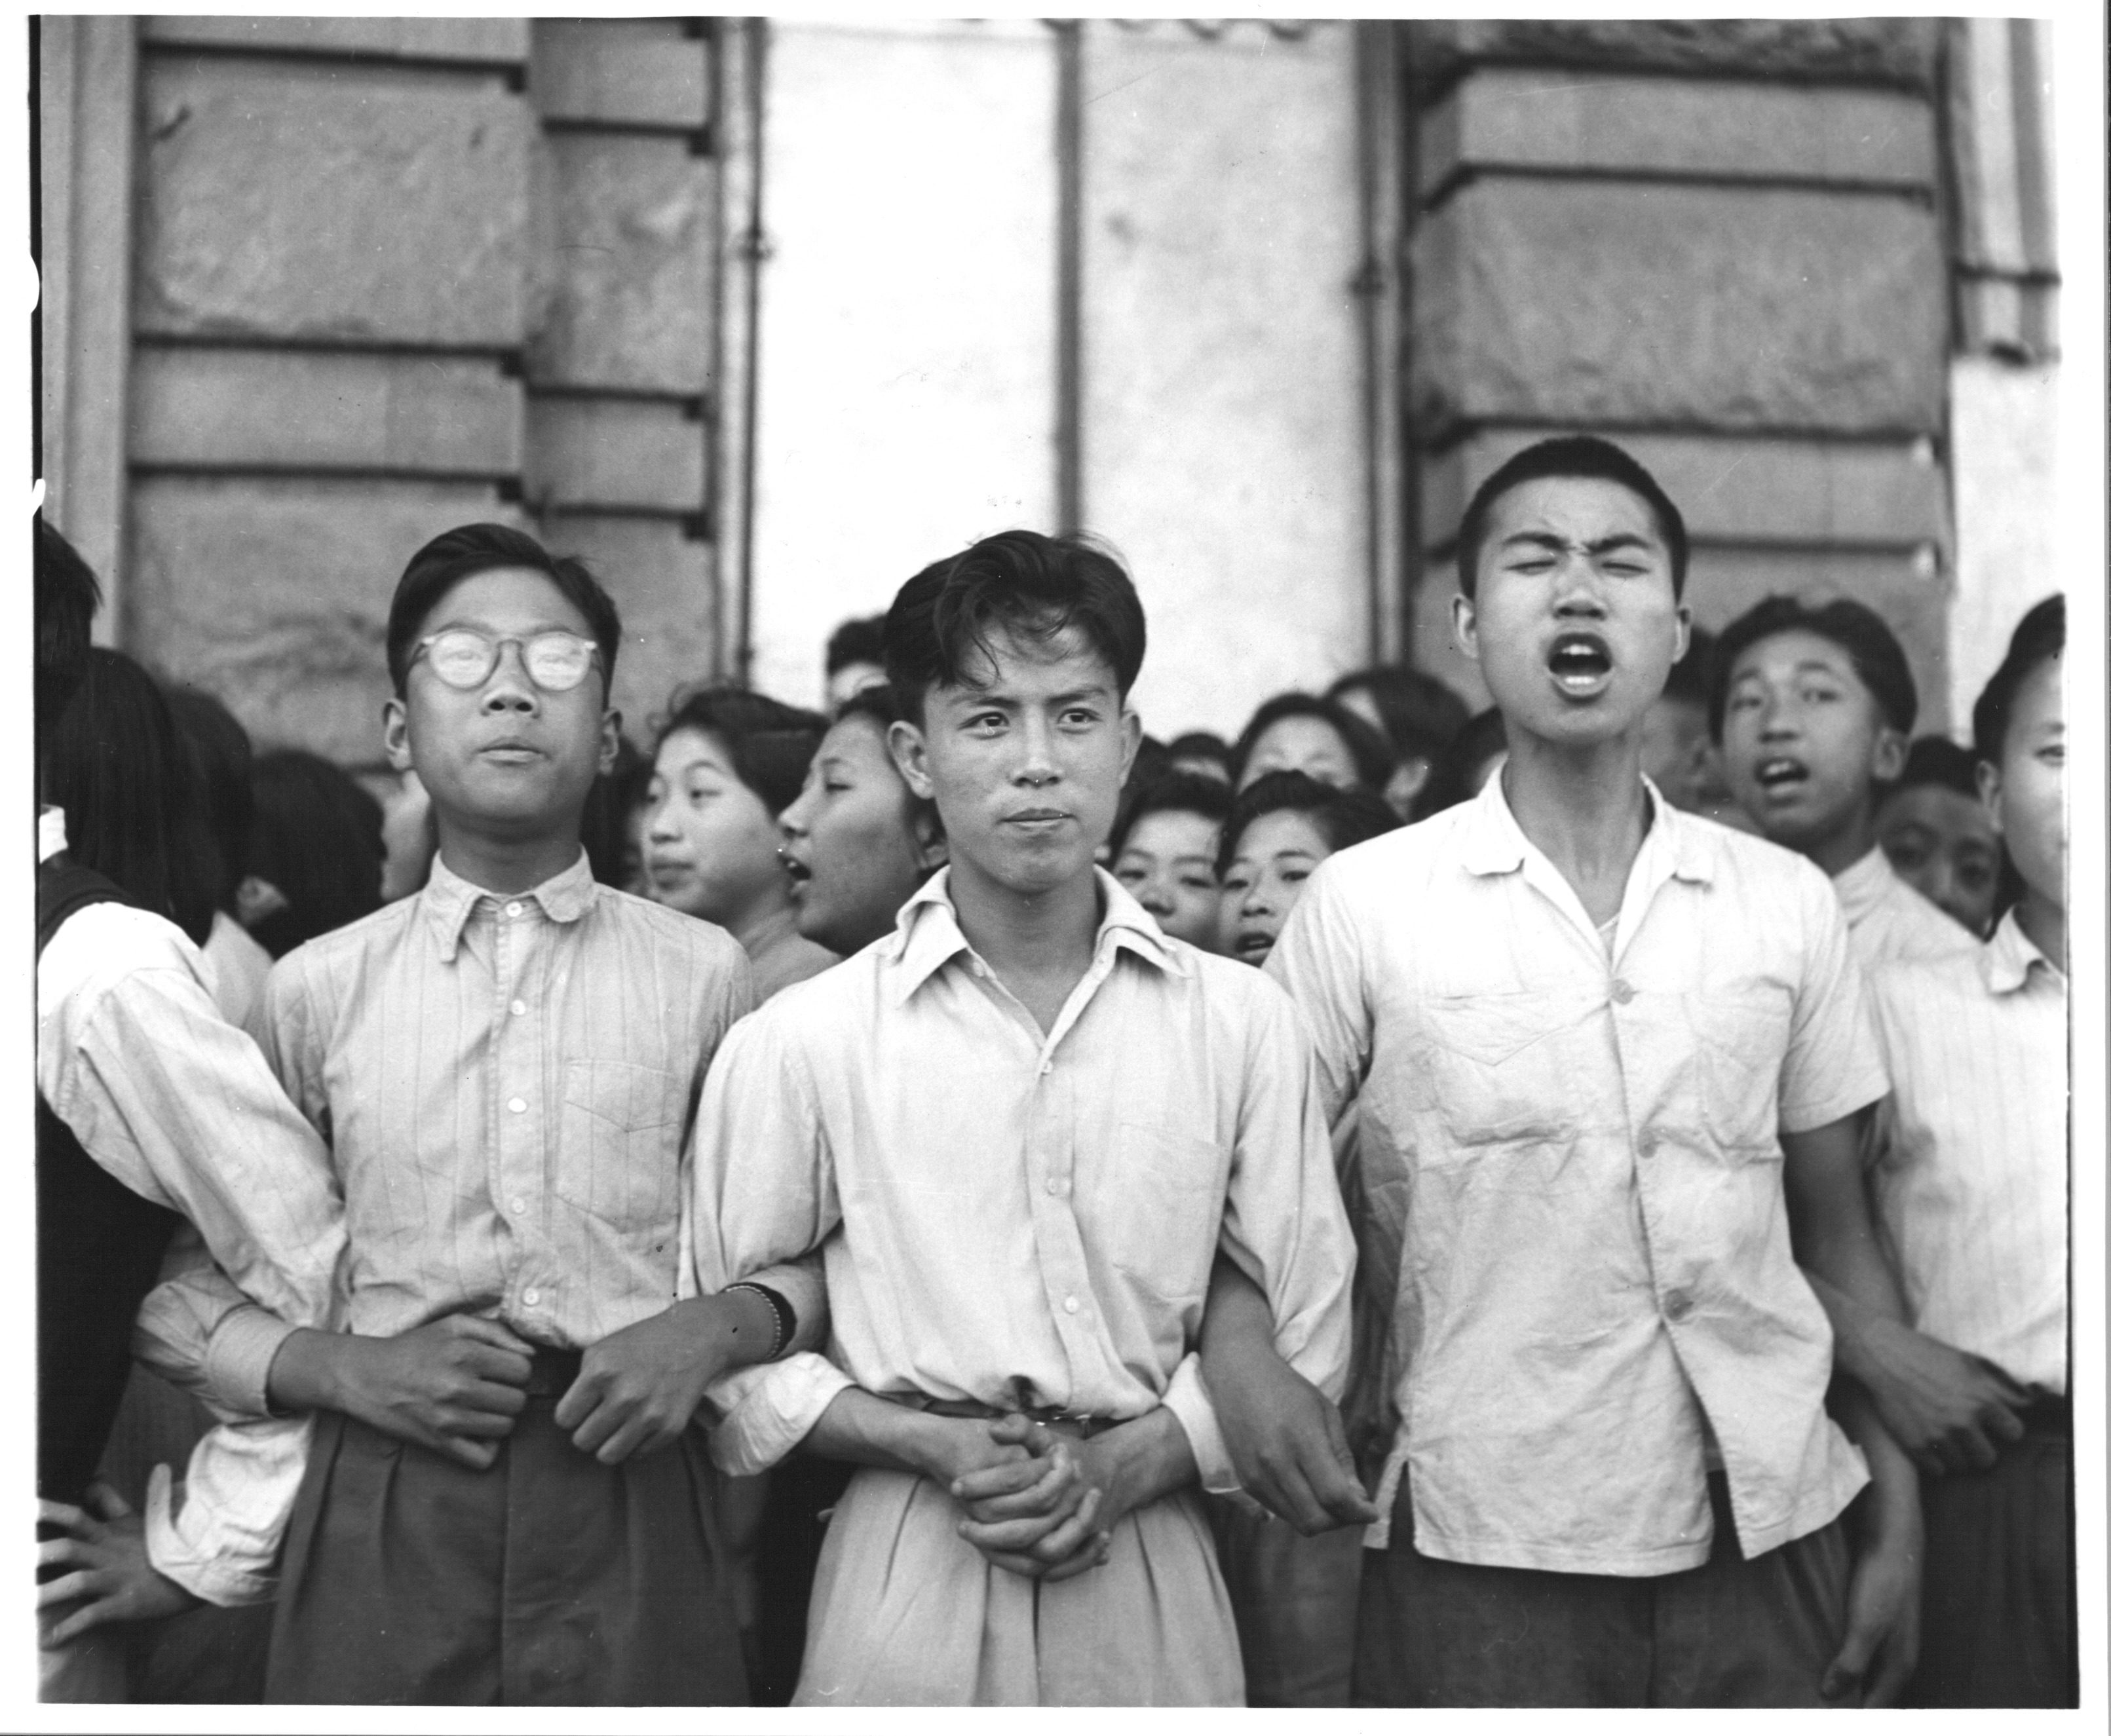 Students from Chiao Tung University during an Anti-American demonstration. (Photo by Jack Birns/ The LIFE Picture Collection © Meredith Corporation).